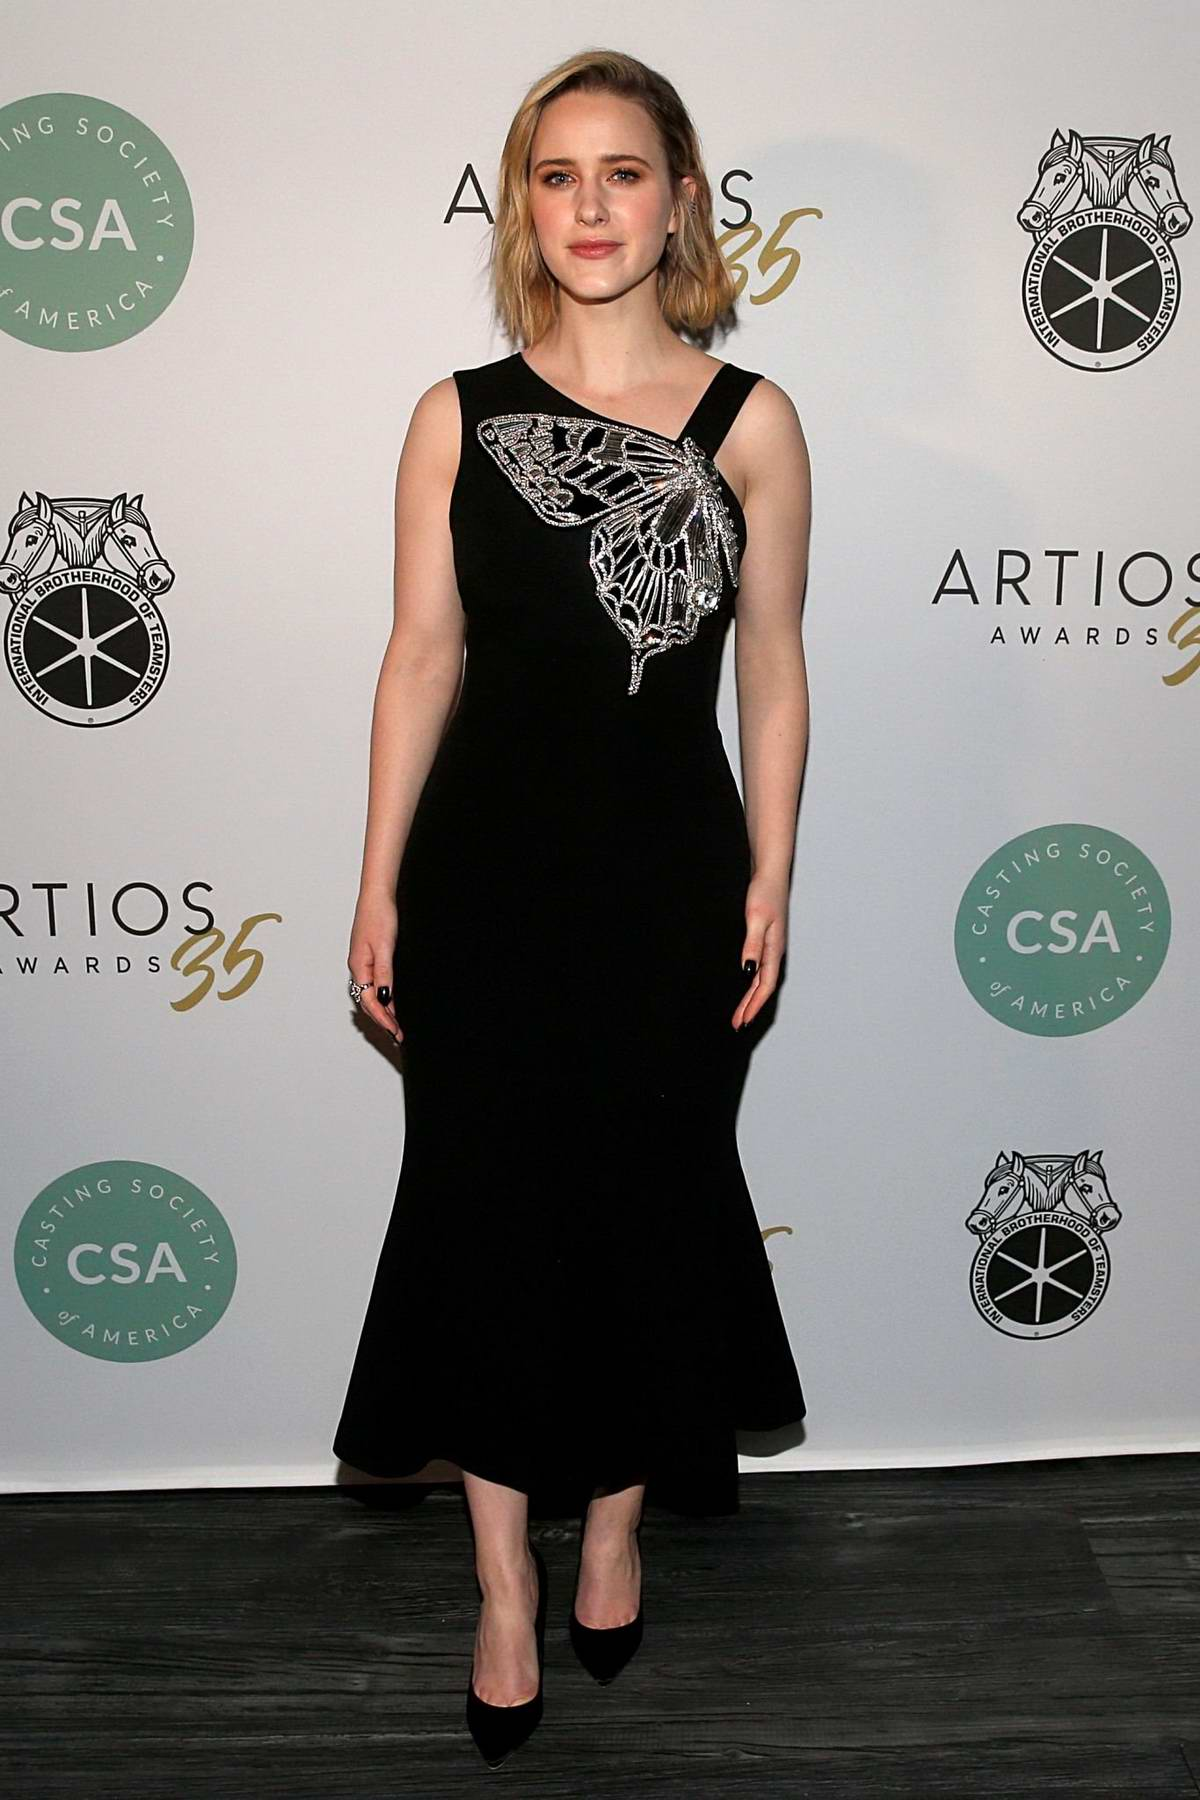 Rachel Brosnahan attends the 35th Annual Artios Awards in New York City